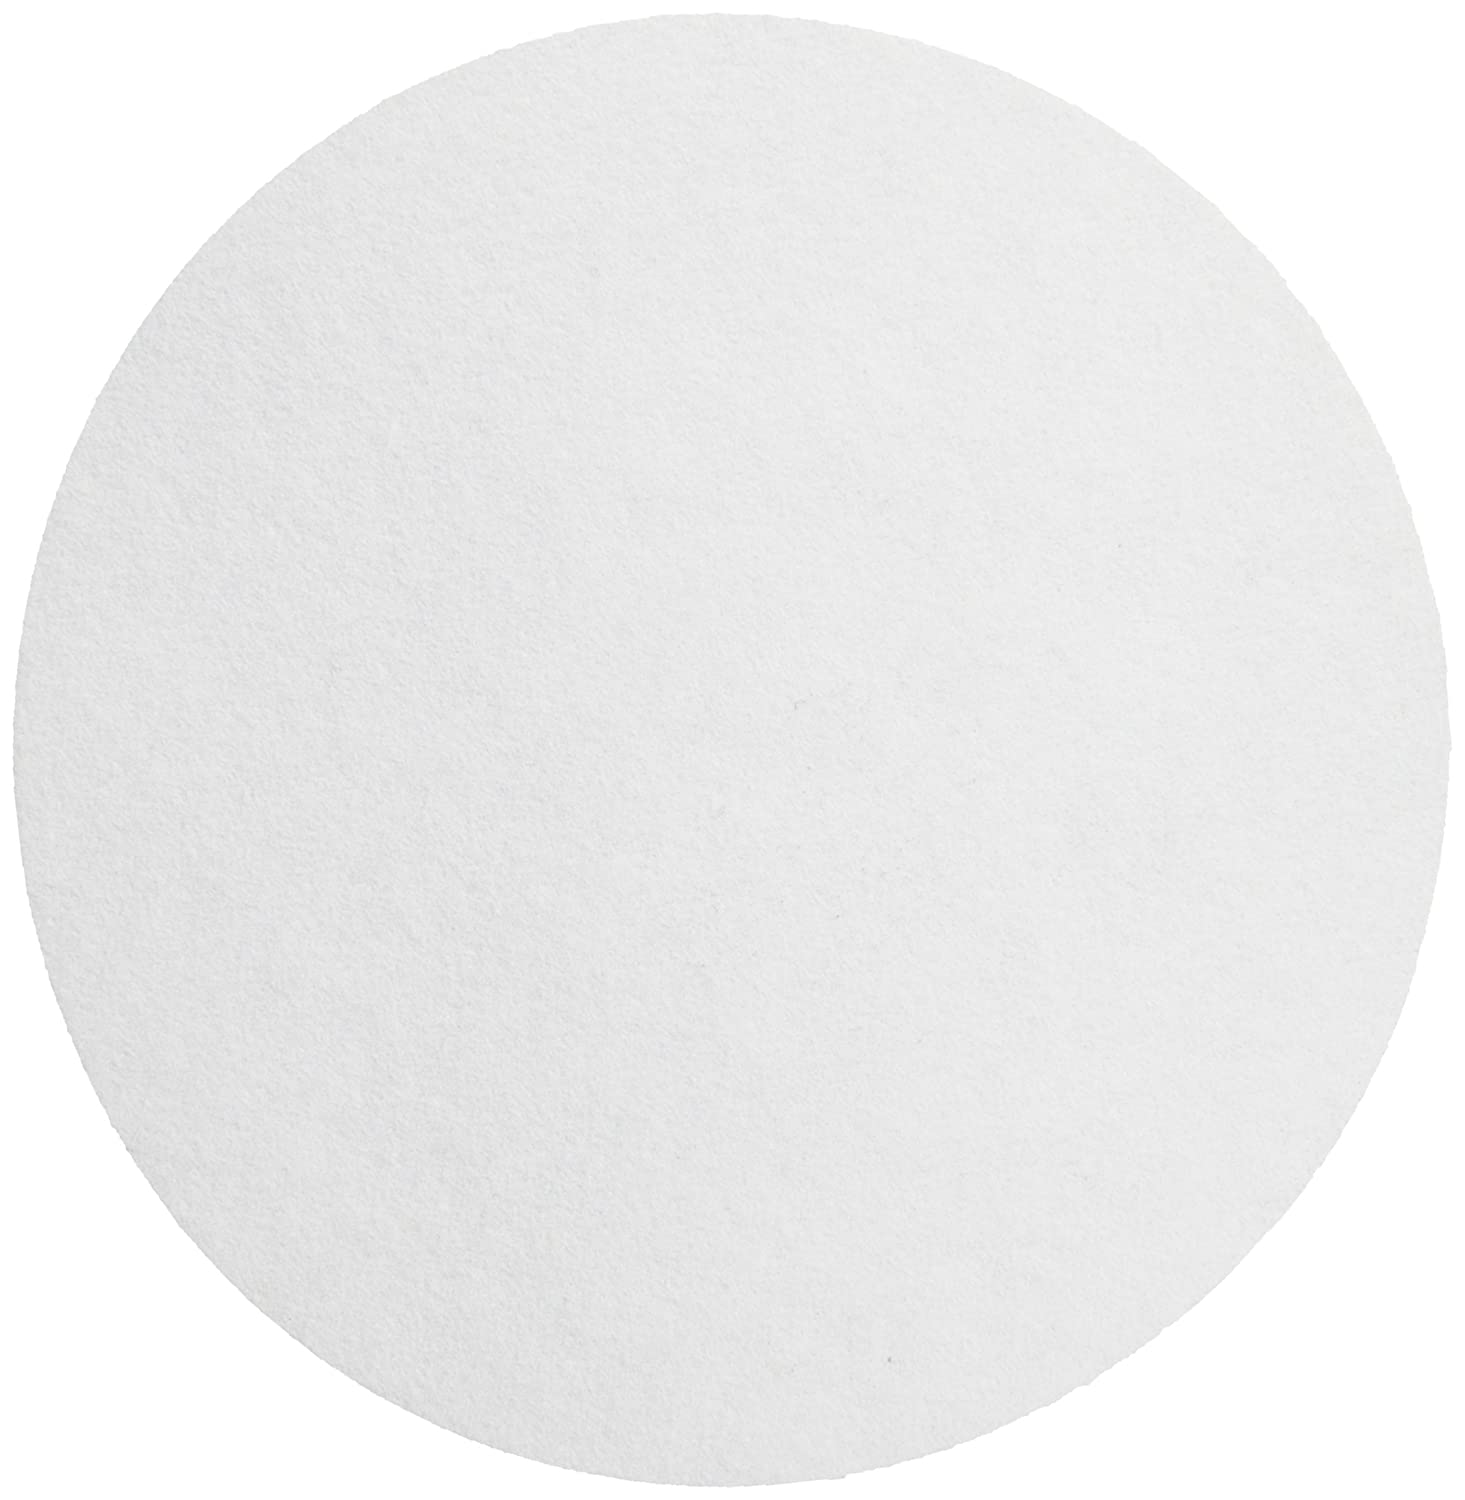 WHATMAN  1442125  quantitative filter paper ashless Grade 42 (Pack of 100) GE Healthcare F1241-6